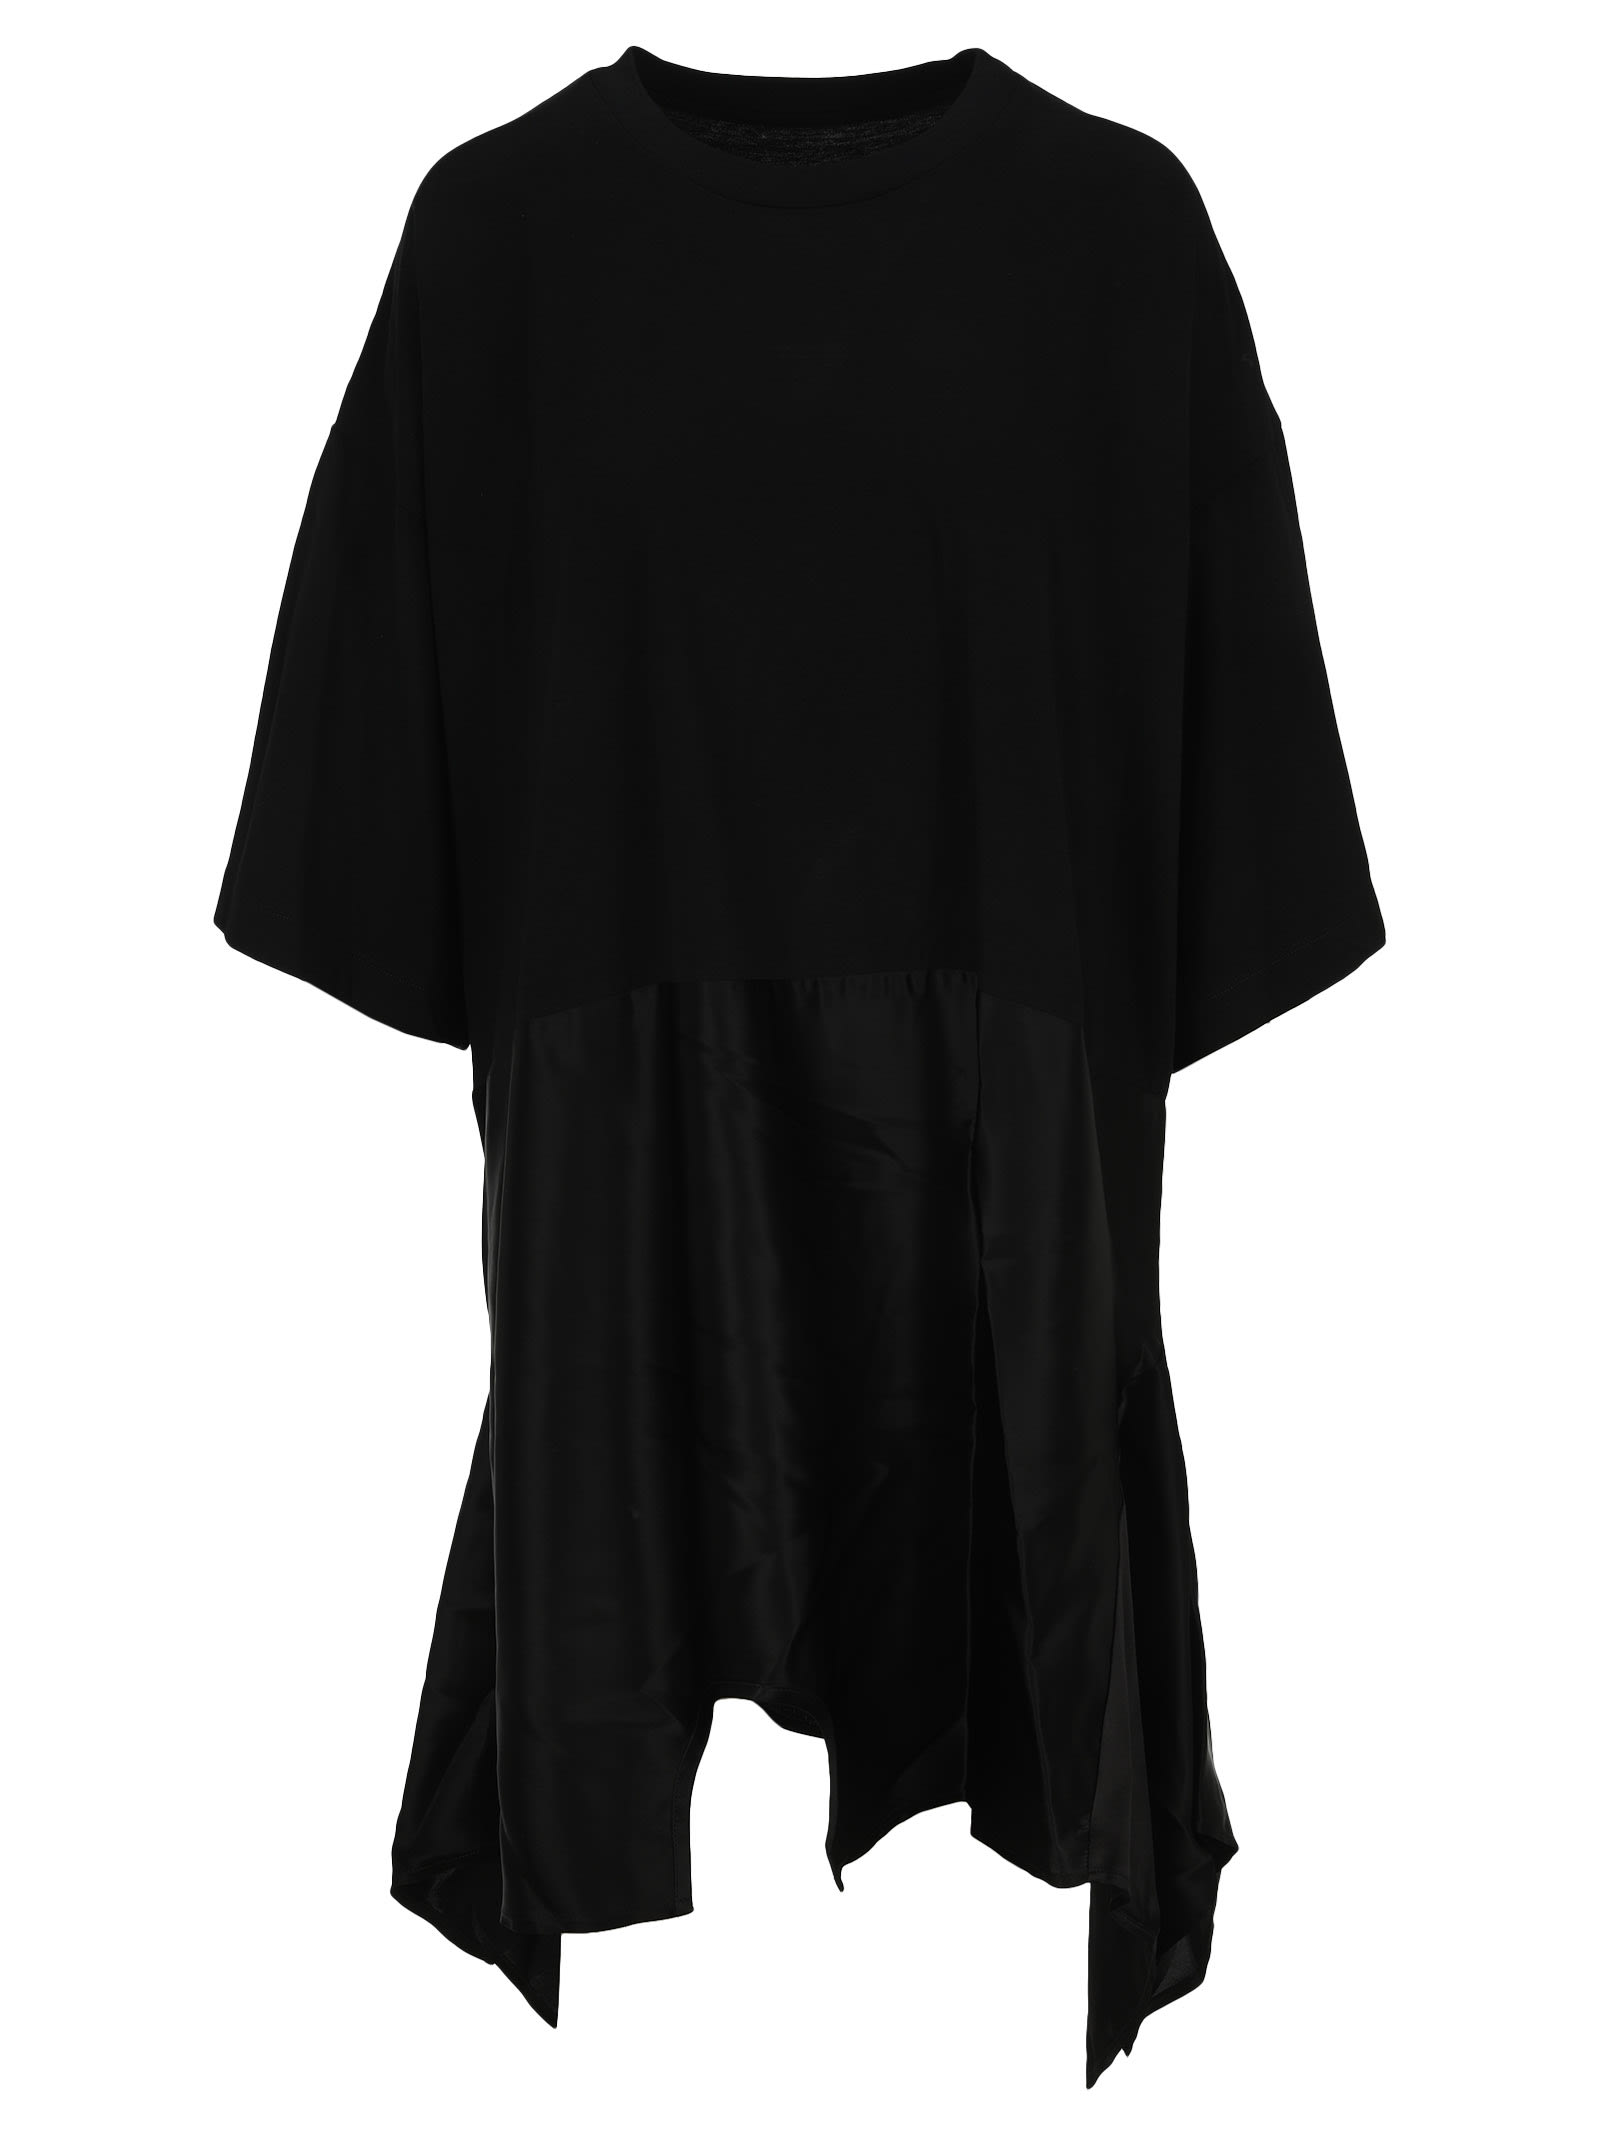 Mm6 Maison Margiela MM6 ASYMMETRIC HEM T-SHIRT DRESS